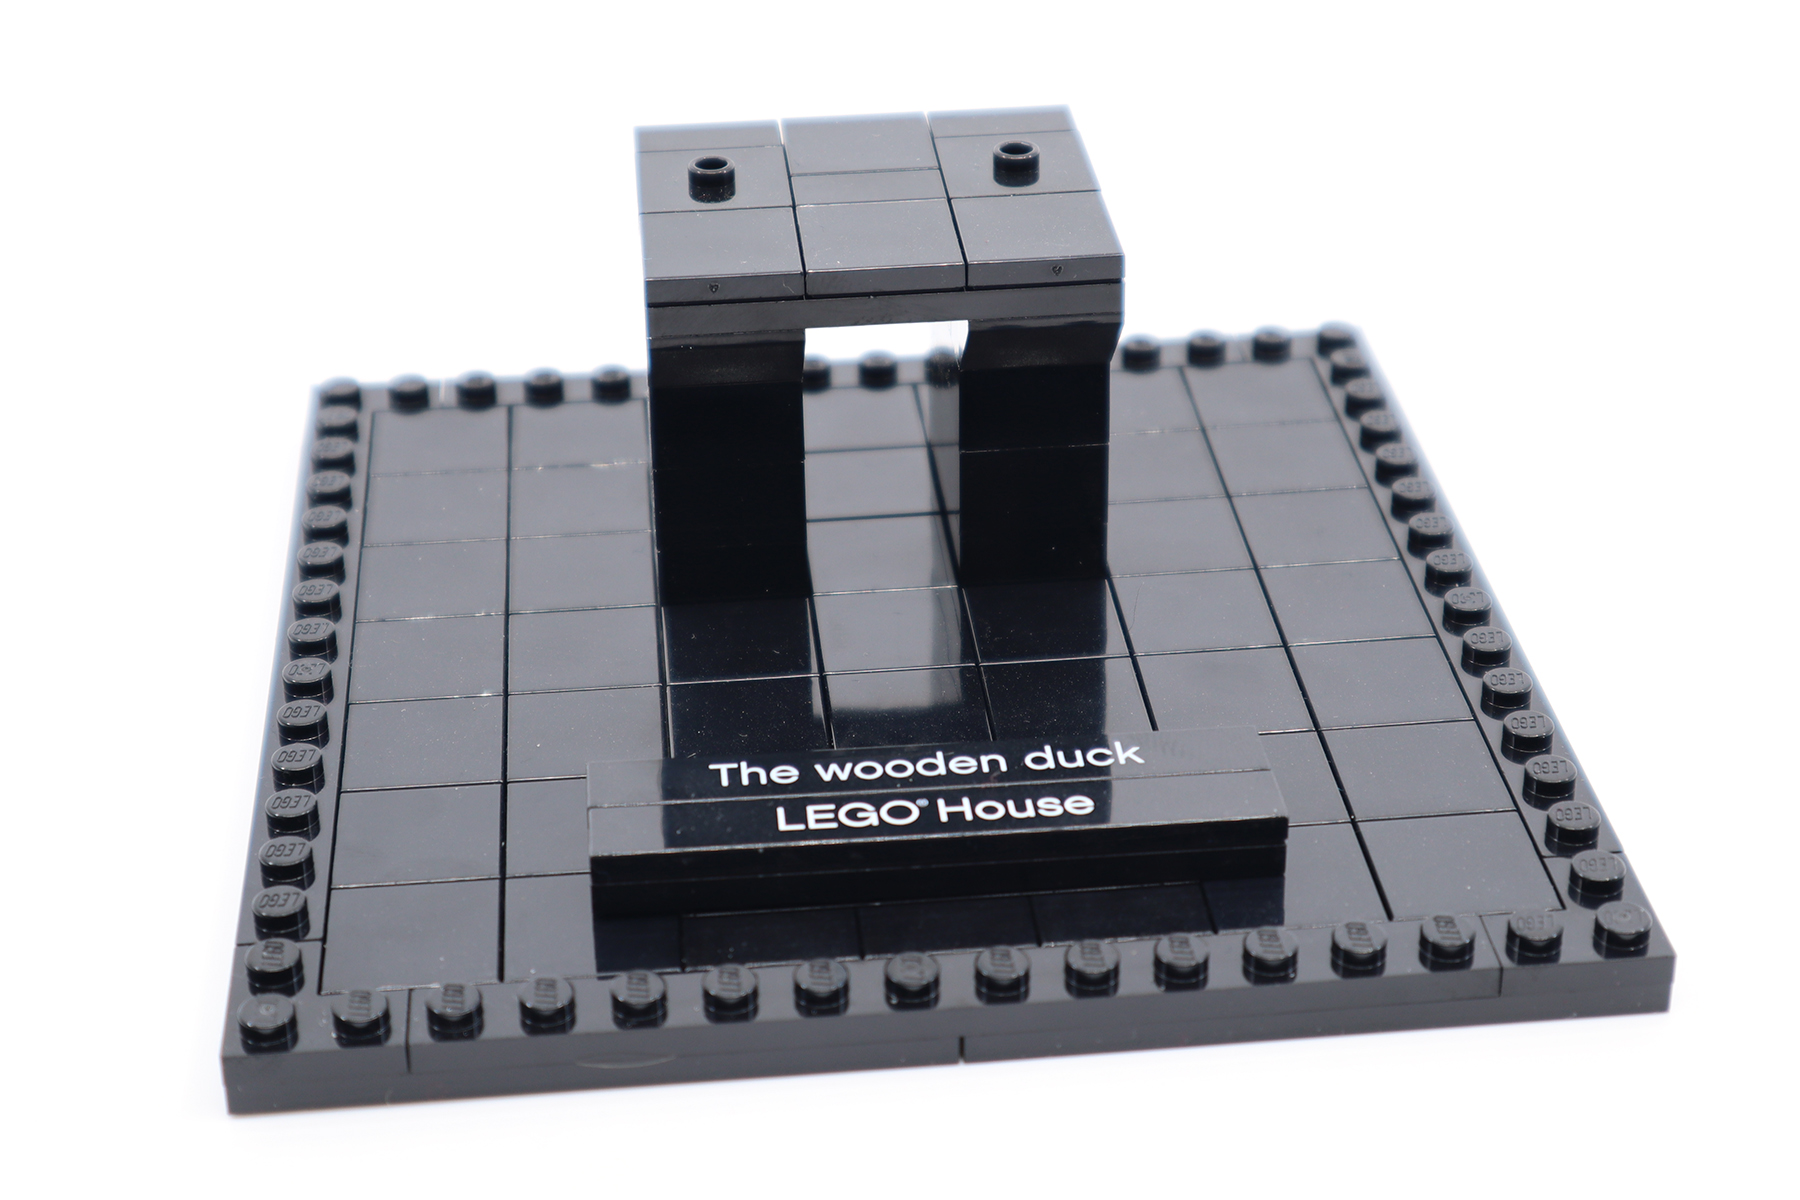 lego-house-wooden-duck-6